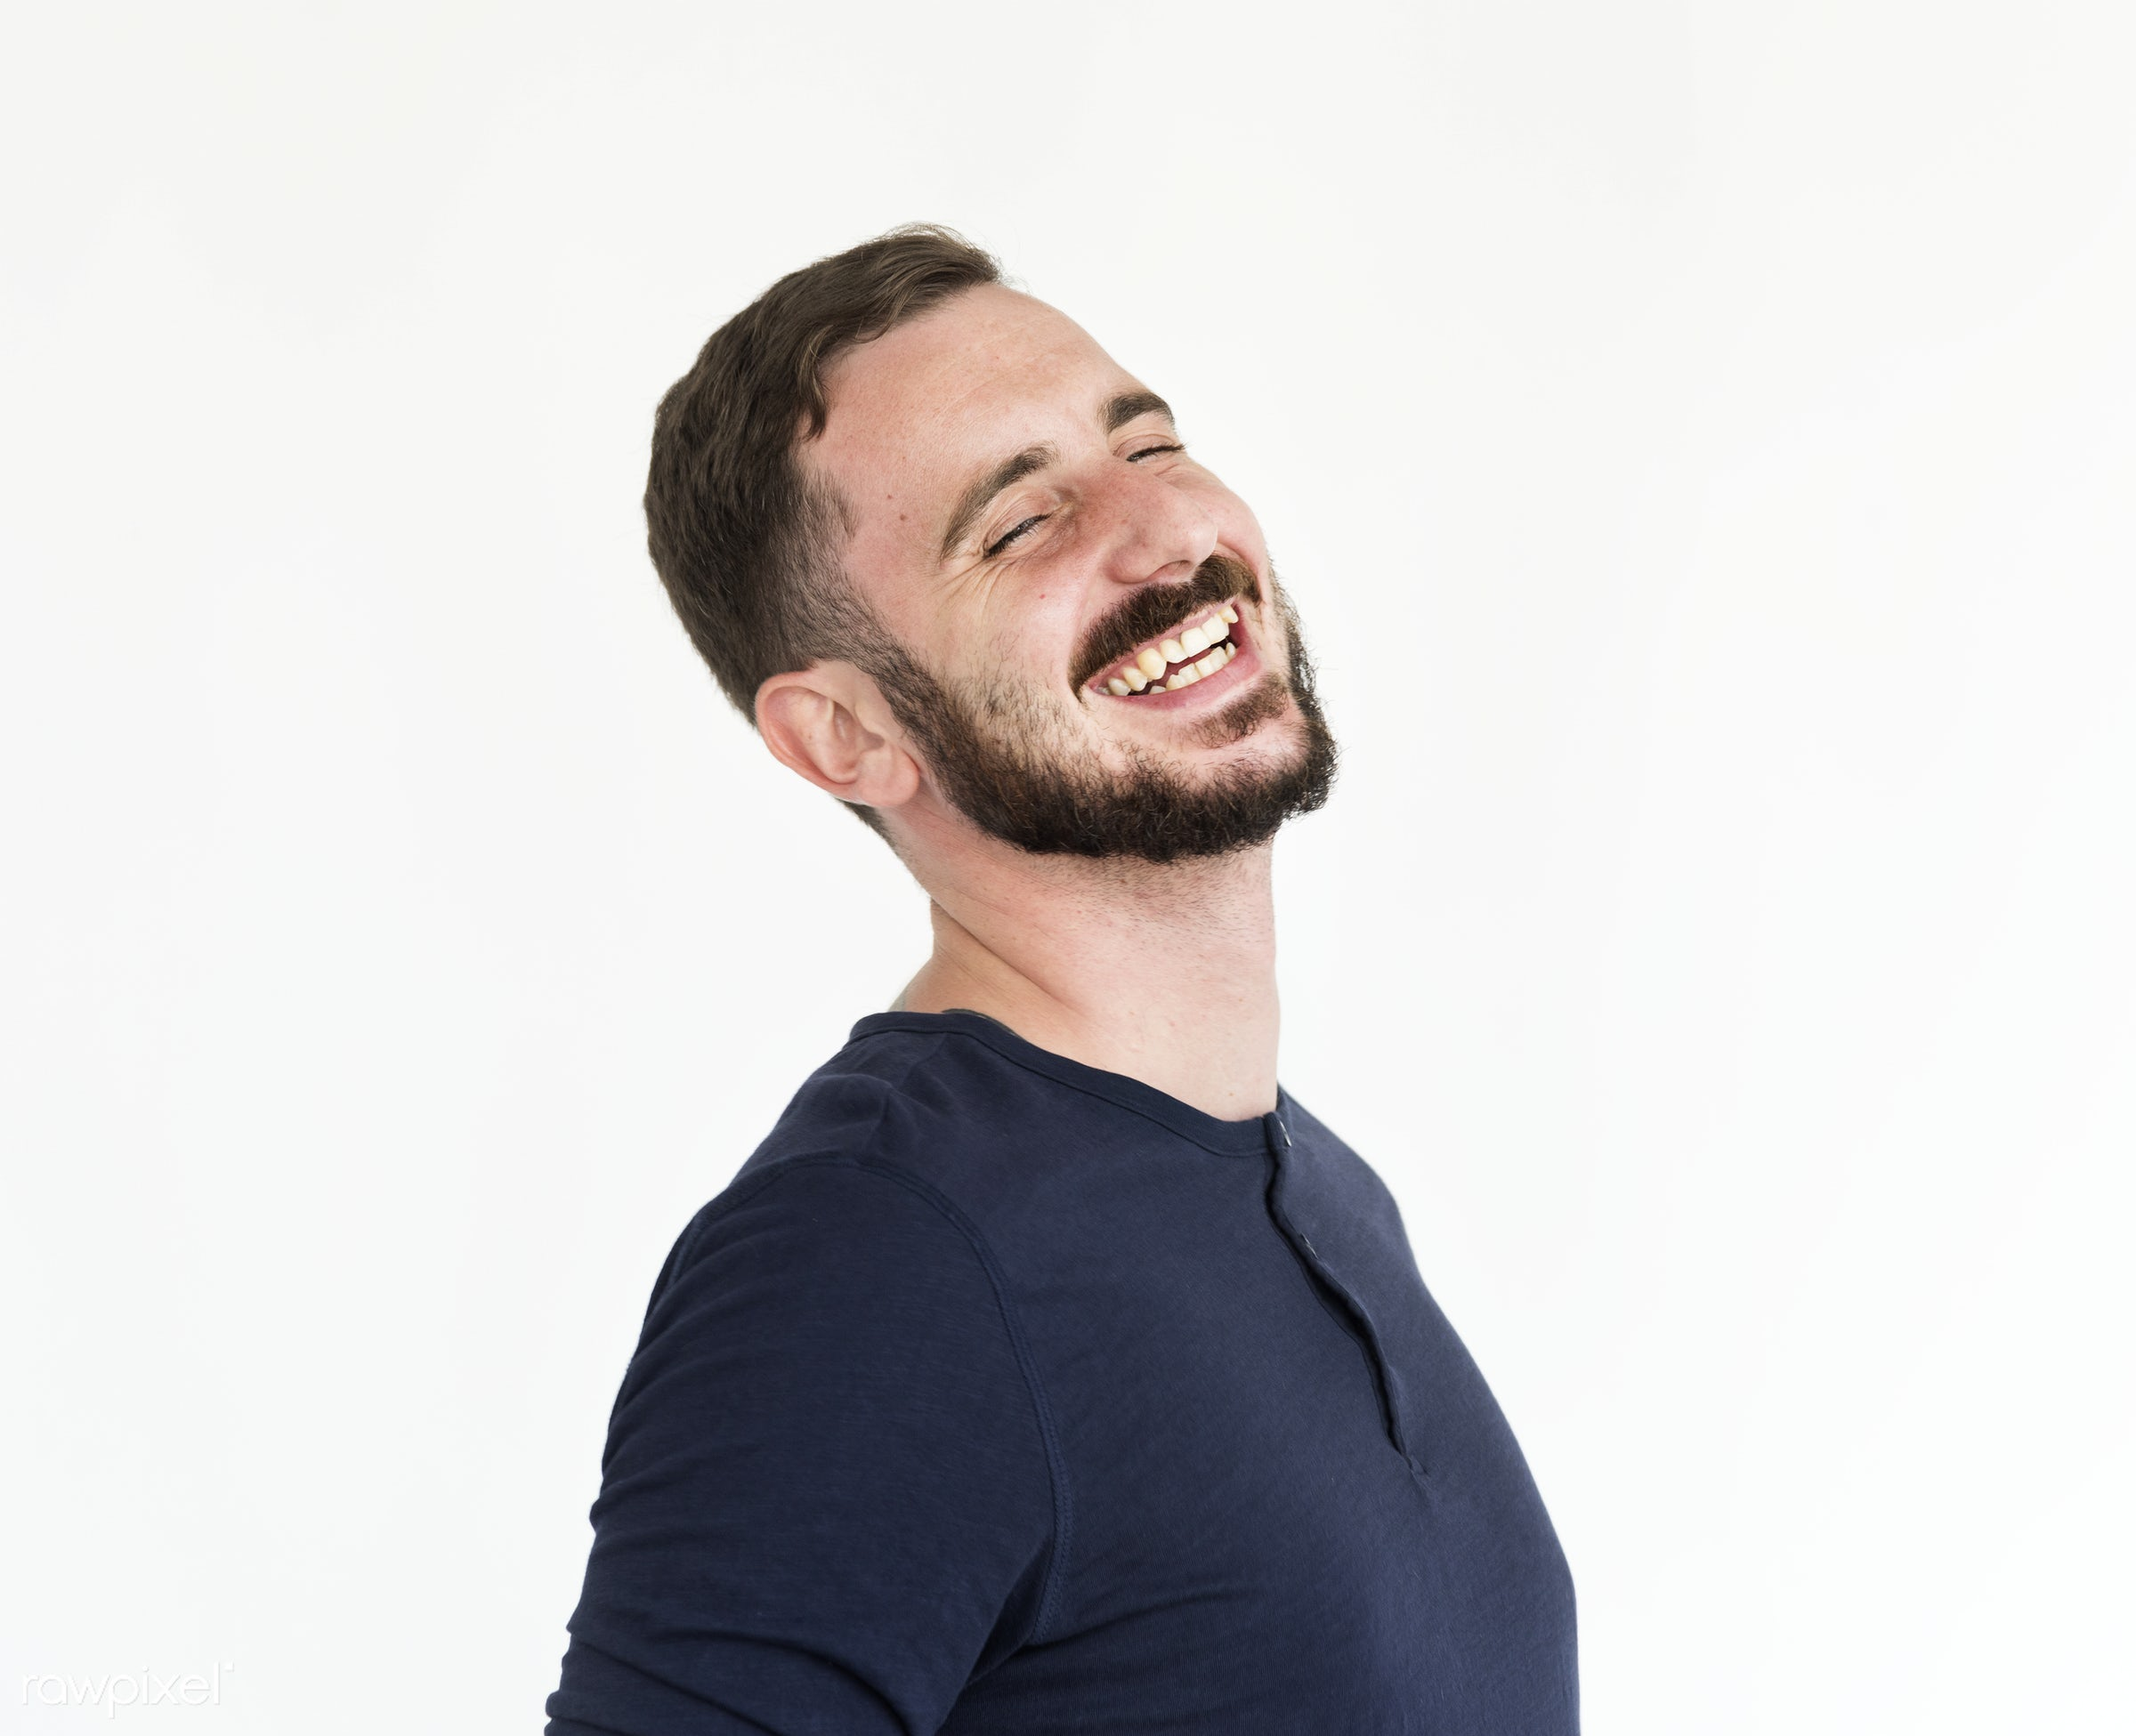 adult, alone, background, beard, bearded, casual, caucasian, cheerful, expression, facial, fun, funny, giggle, guy, hair,...